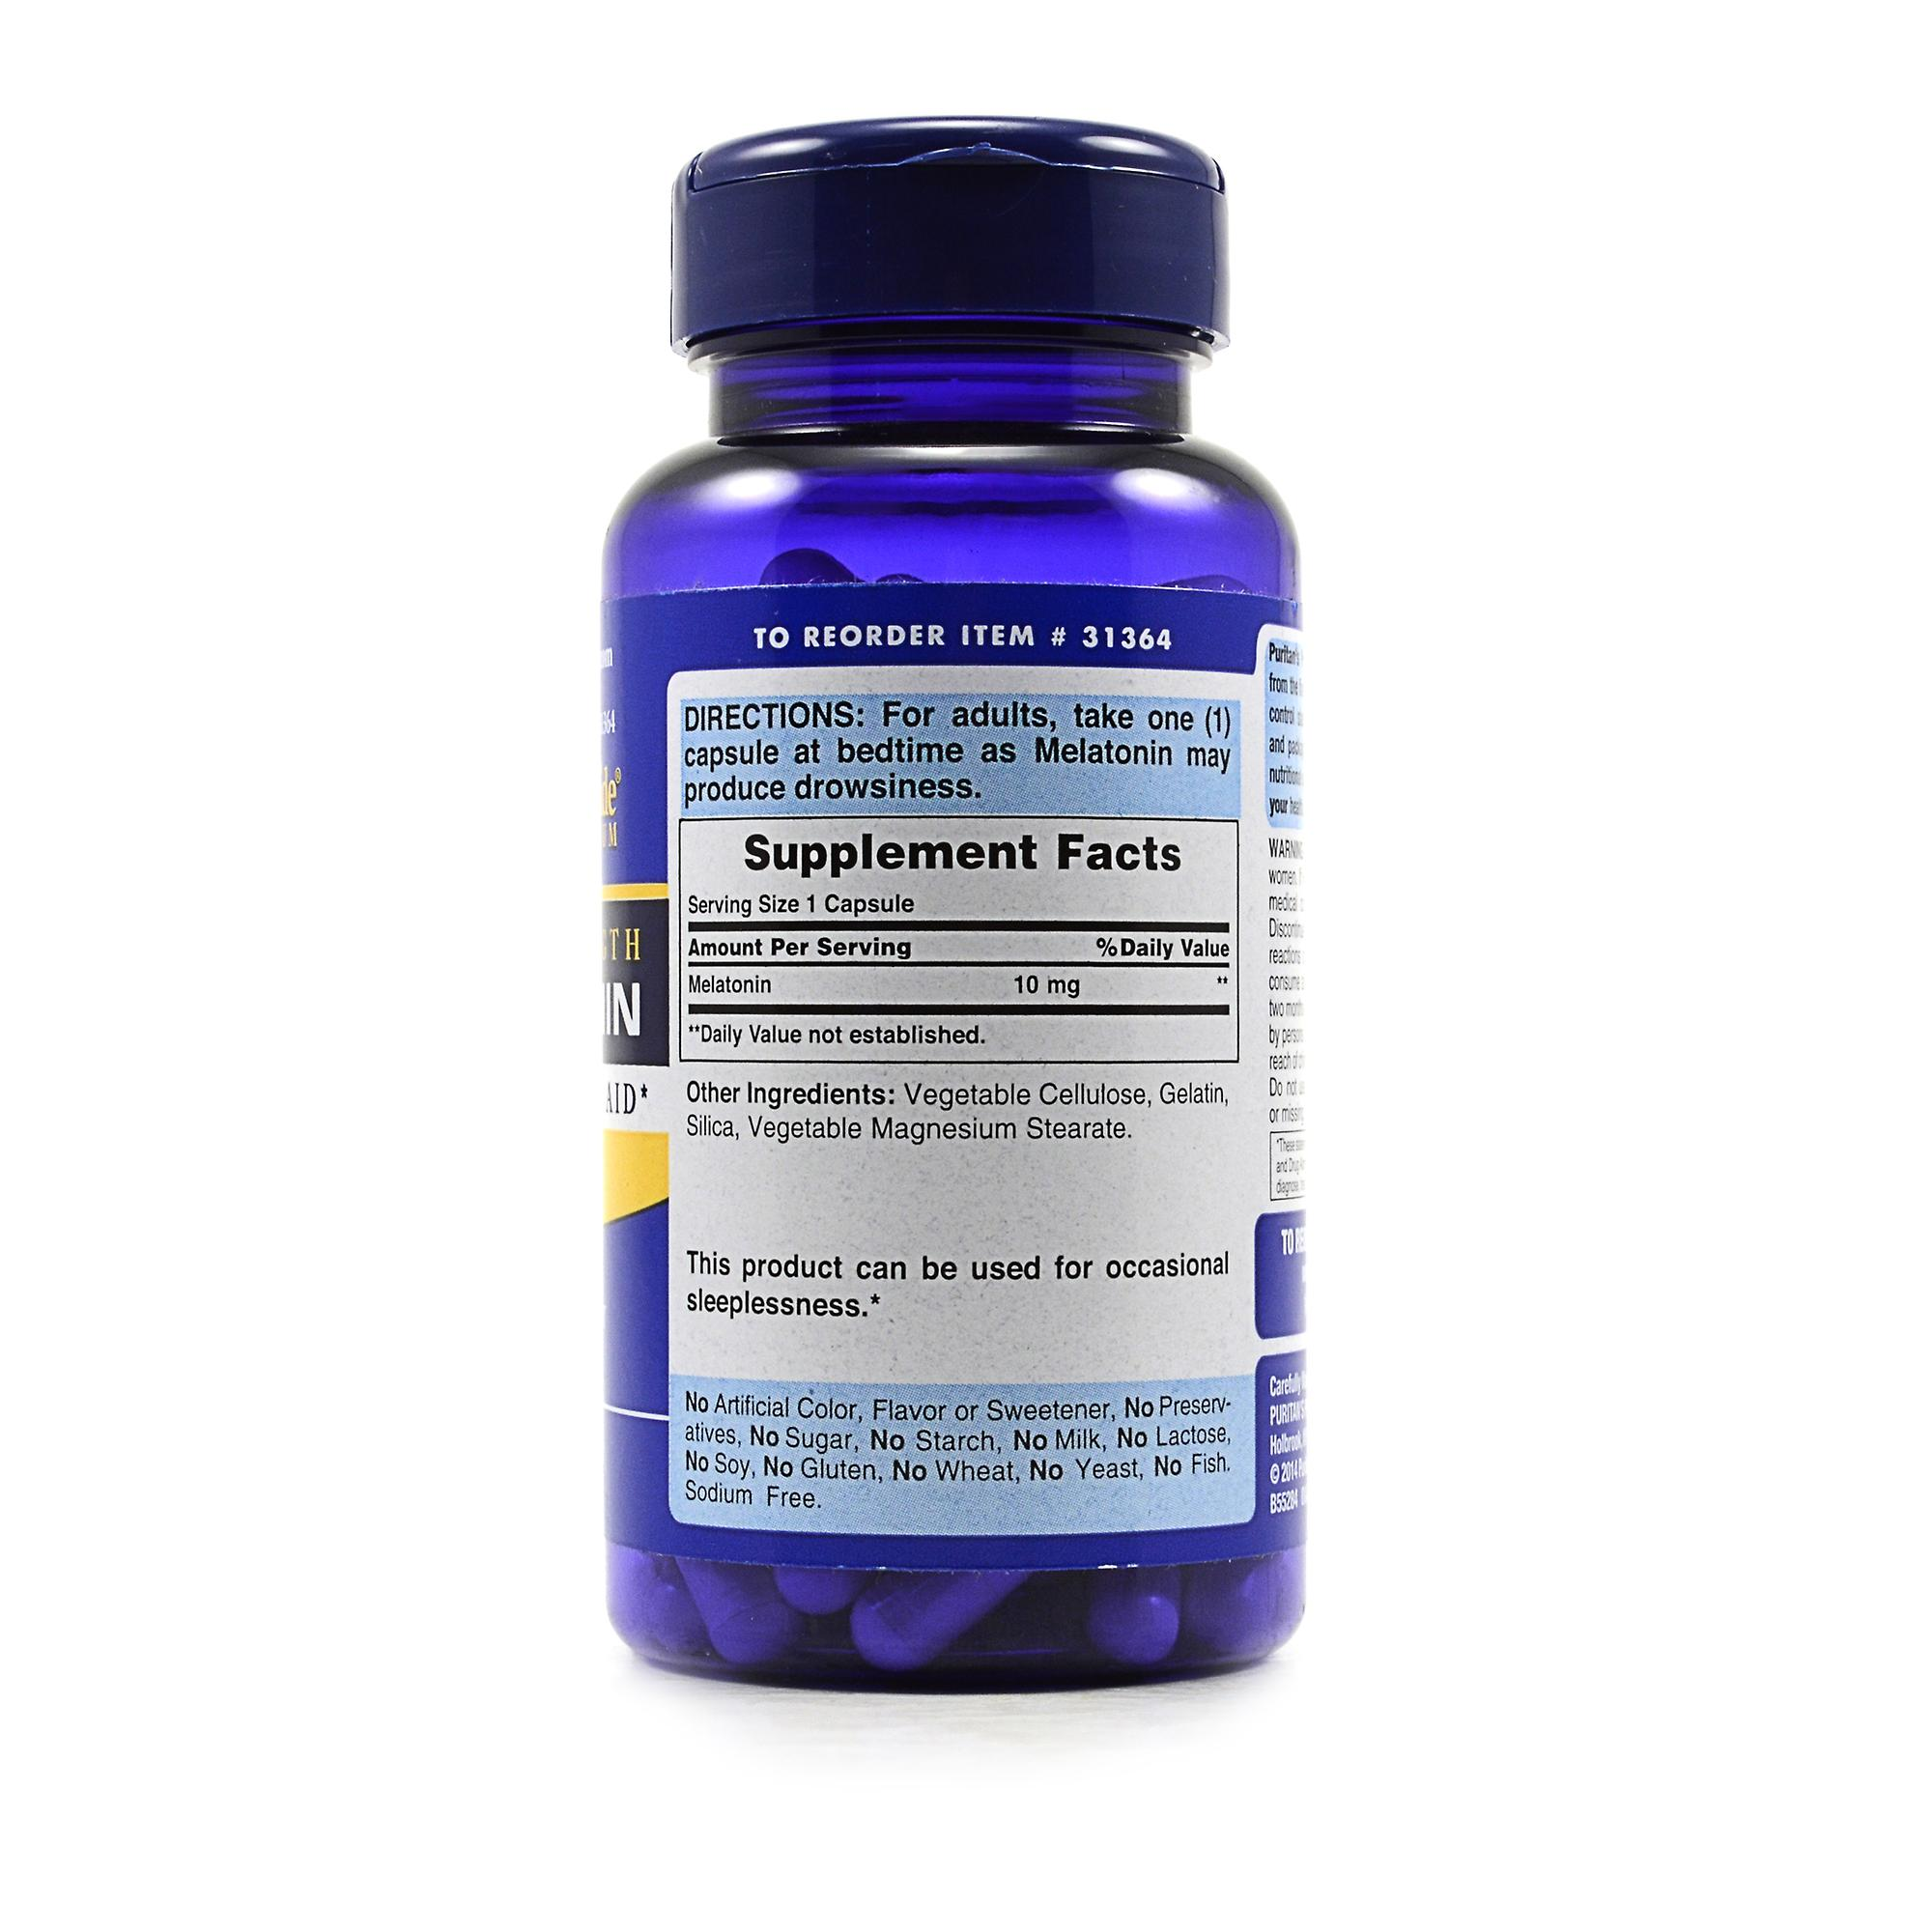 Puritan39;s Pride Premium Super Strength Melatonin Review  LabDoor